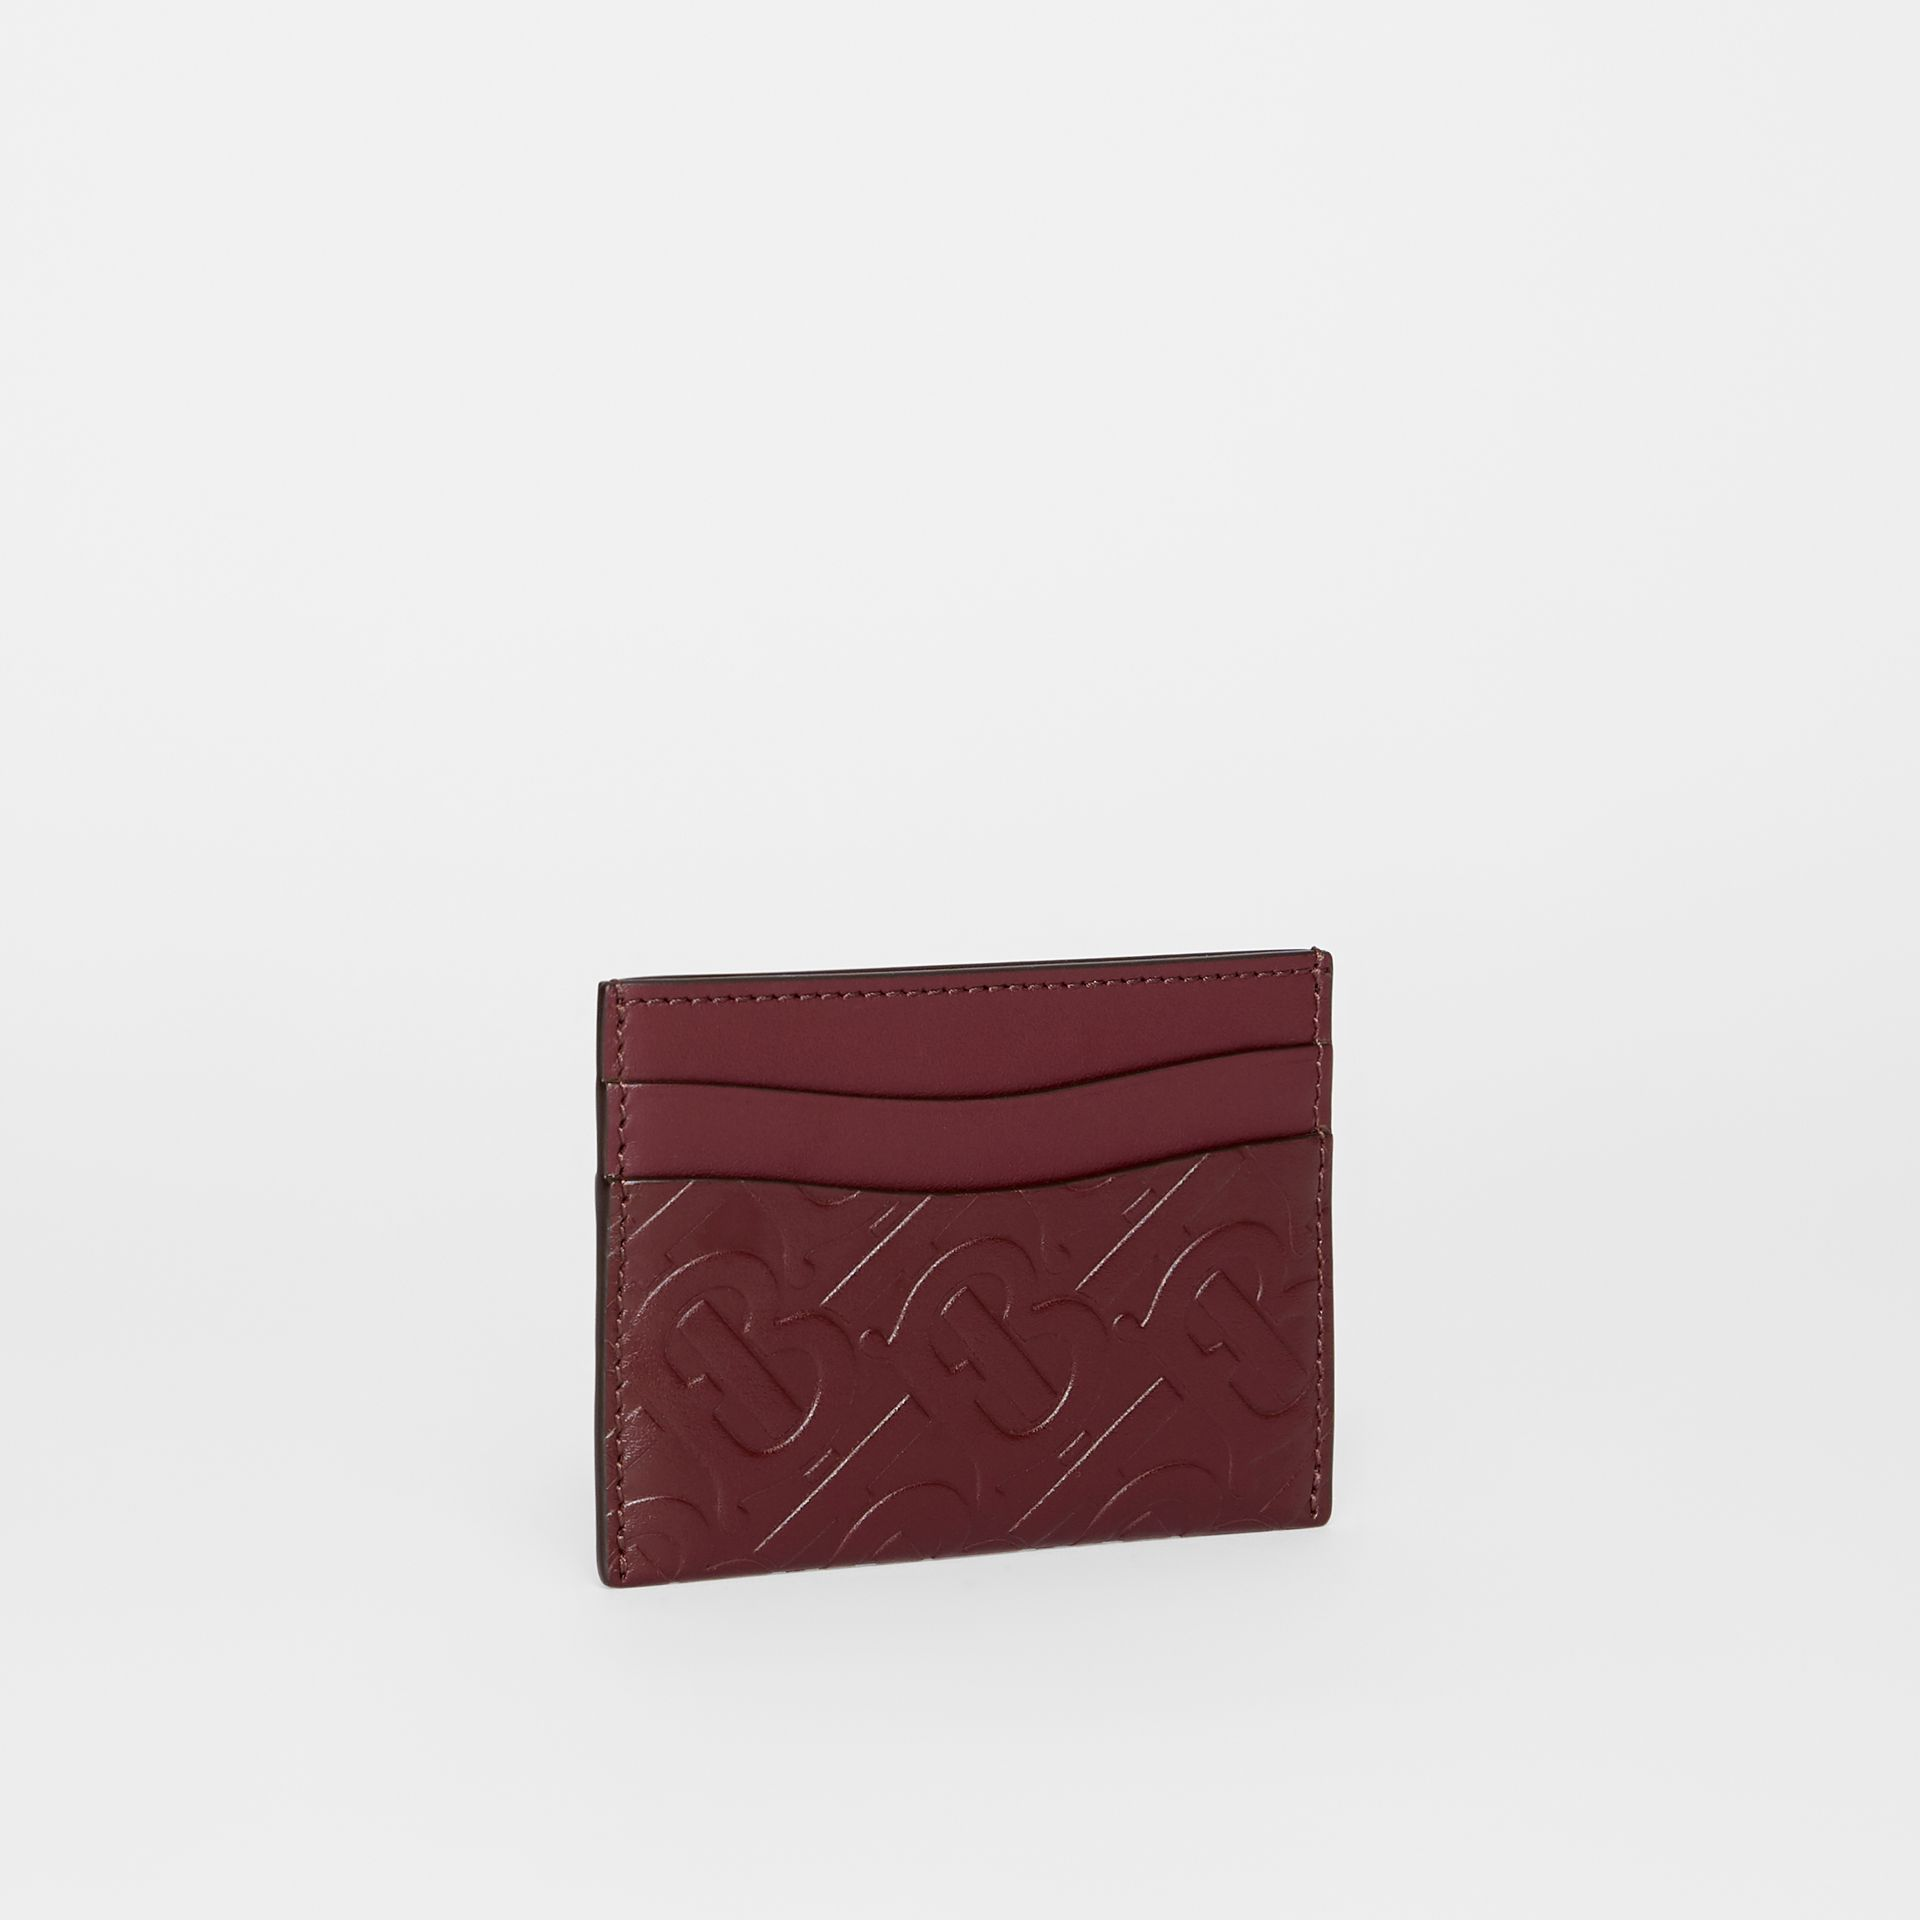 Monogram Leather Card Case in Oxblood - Women | Burberry - gallery image 3